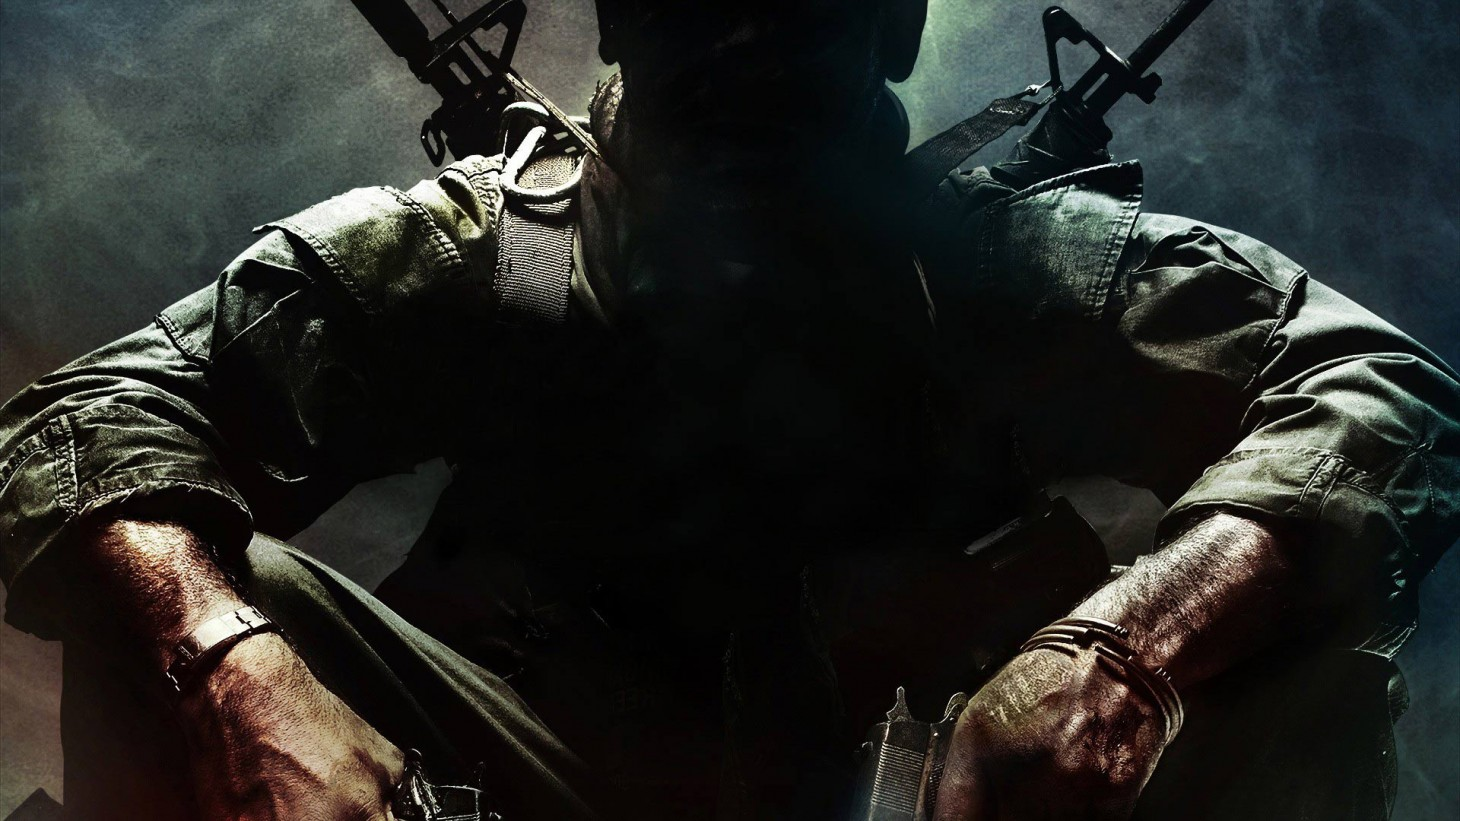 Call Of Duty Losing Single Player Would Be A Huge Mistake - Game